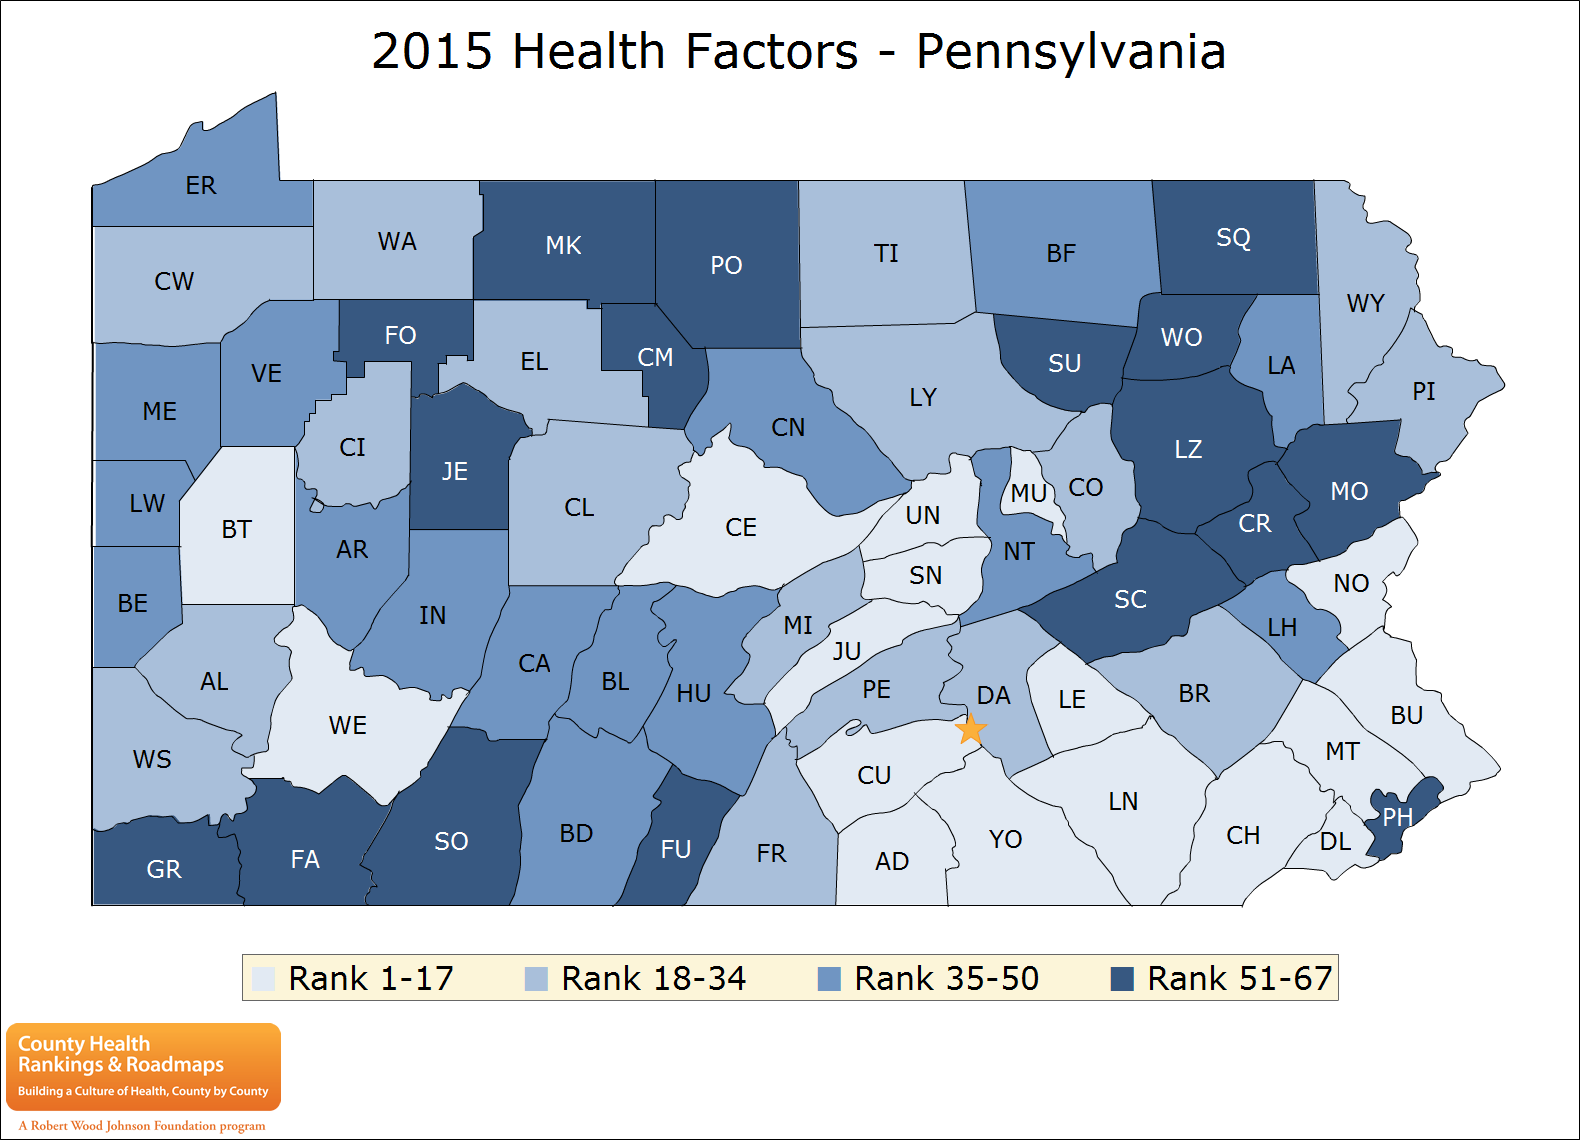 2015 Health Factors - Pennsylvania